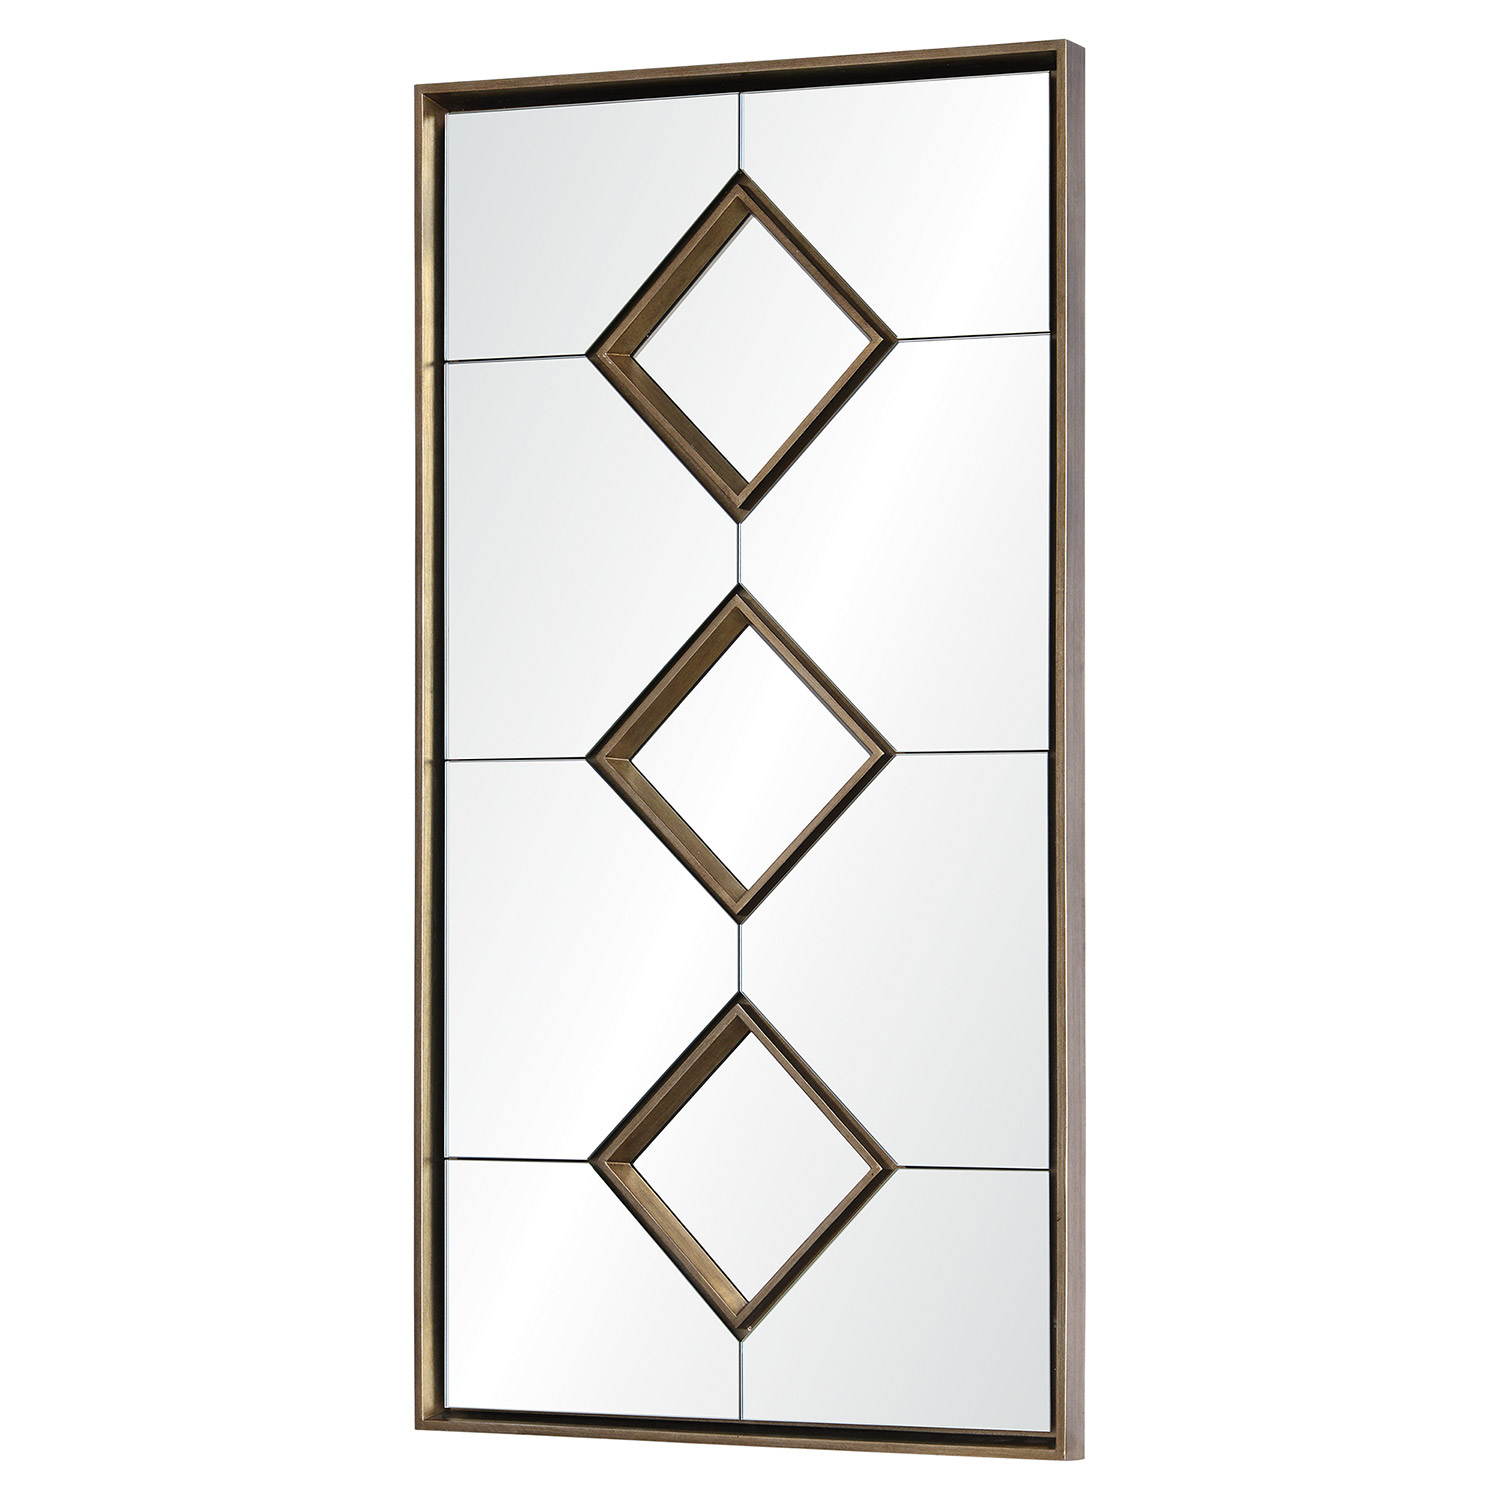 Ren-Wil Paxton Rectangular Mirror - Antique Silver